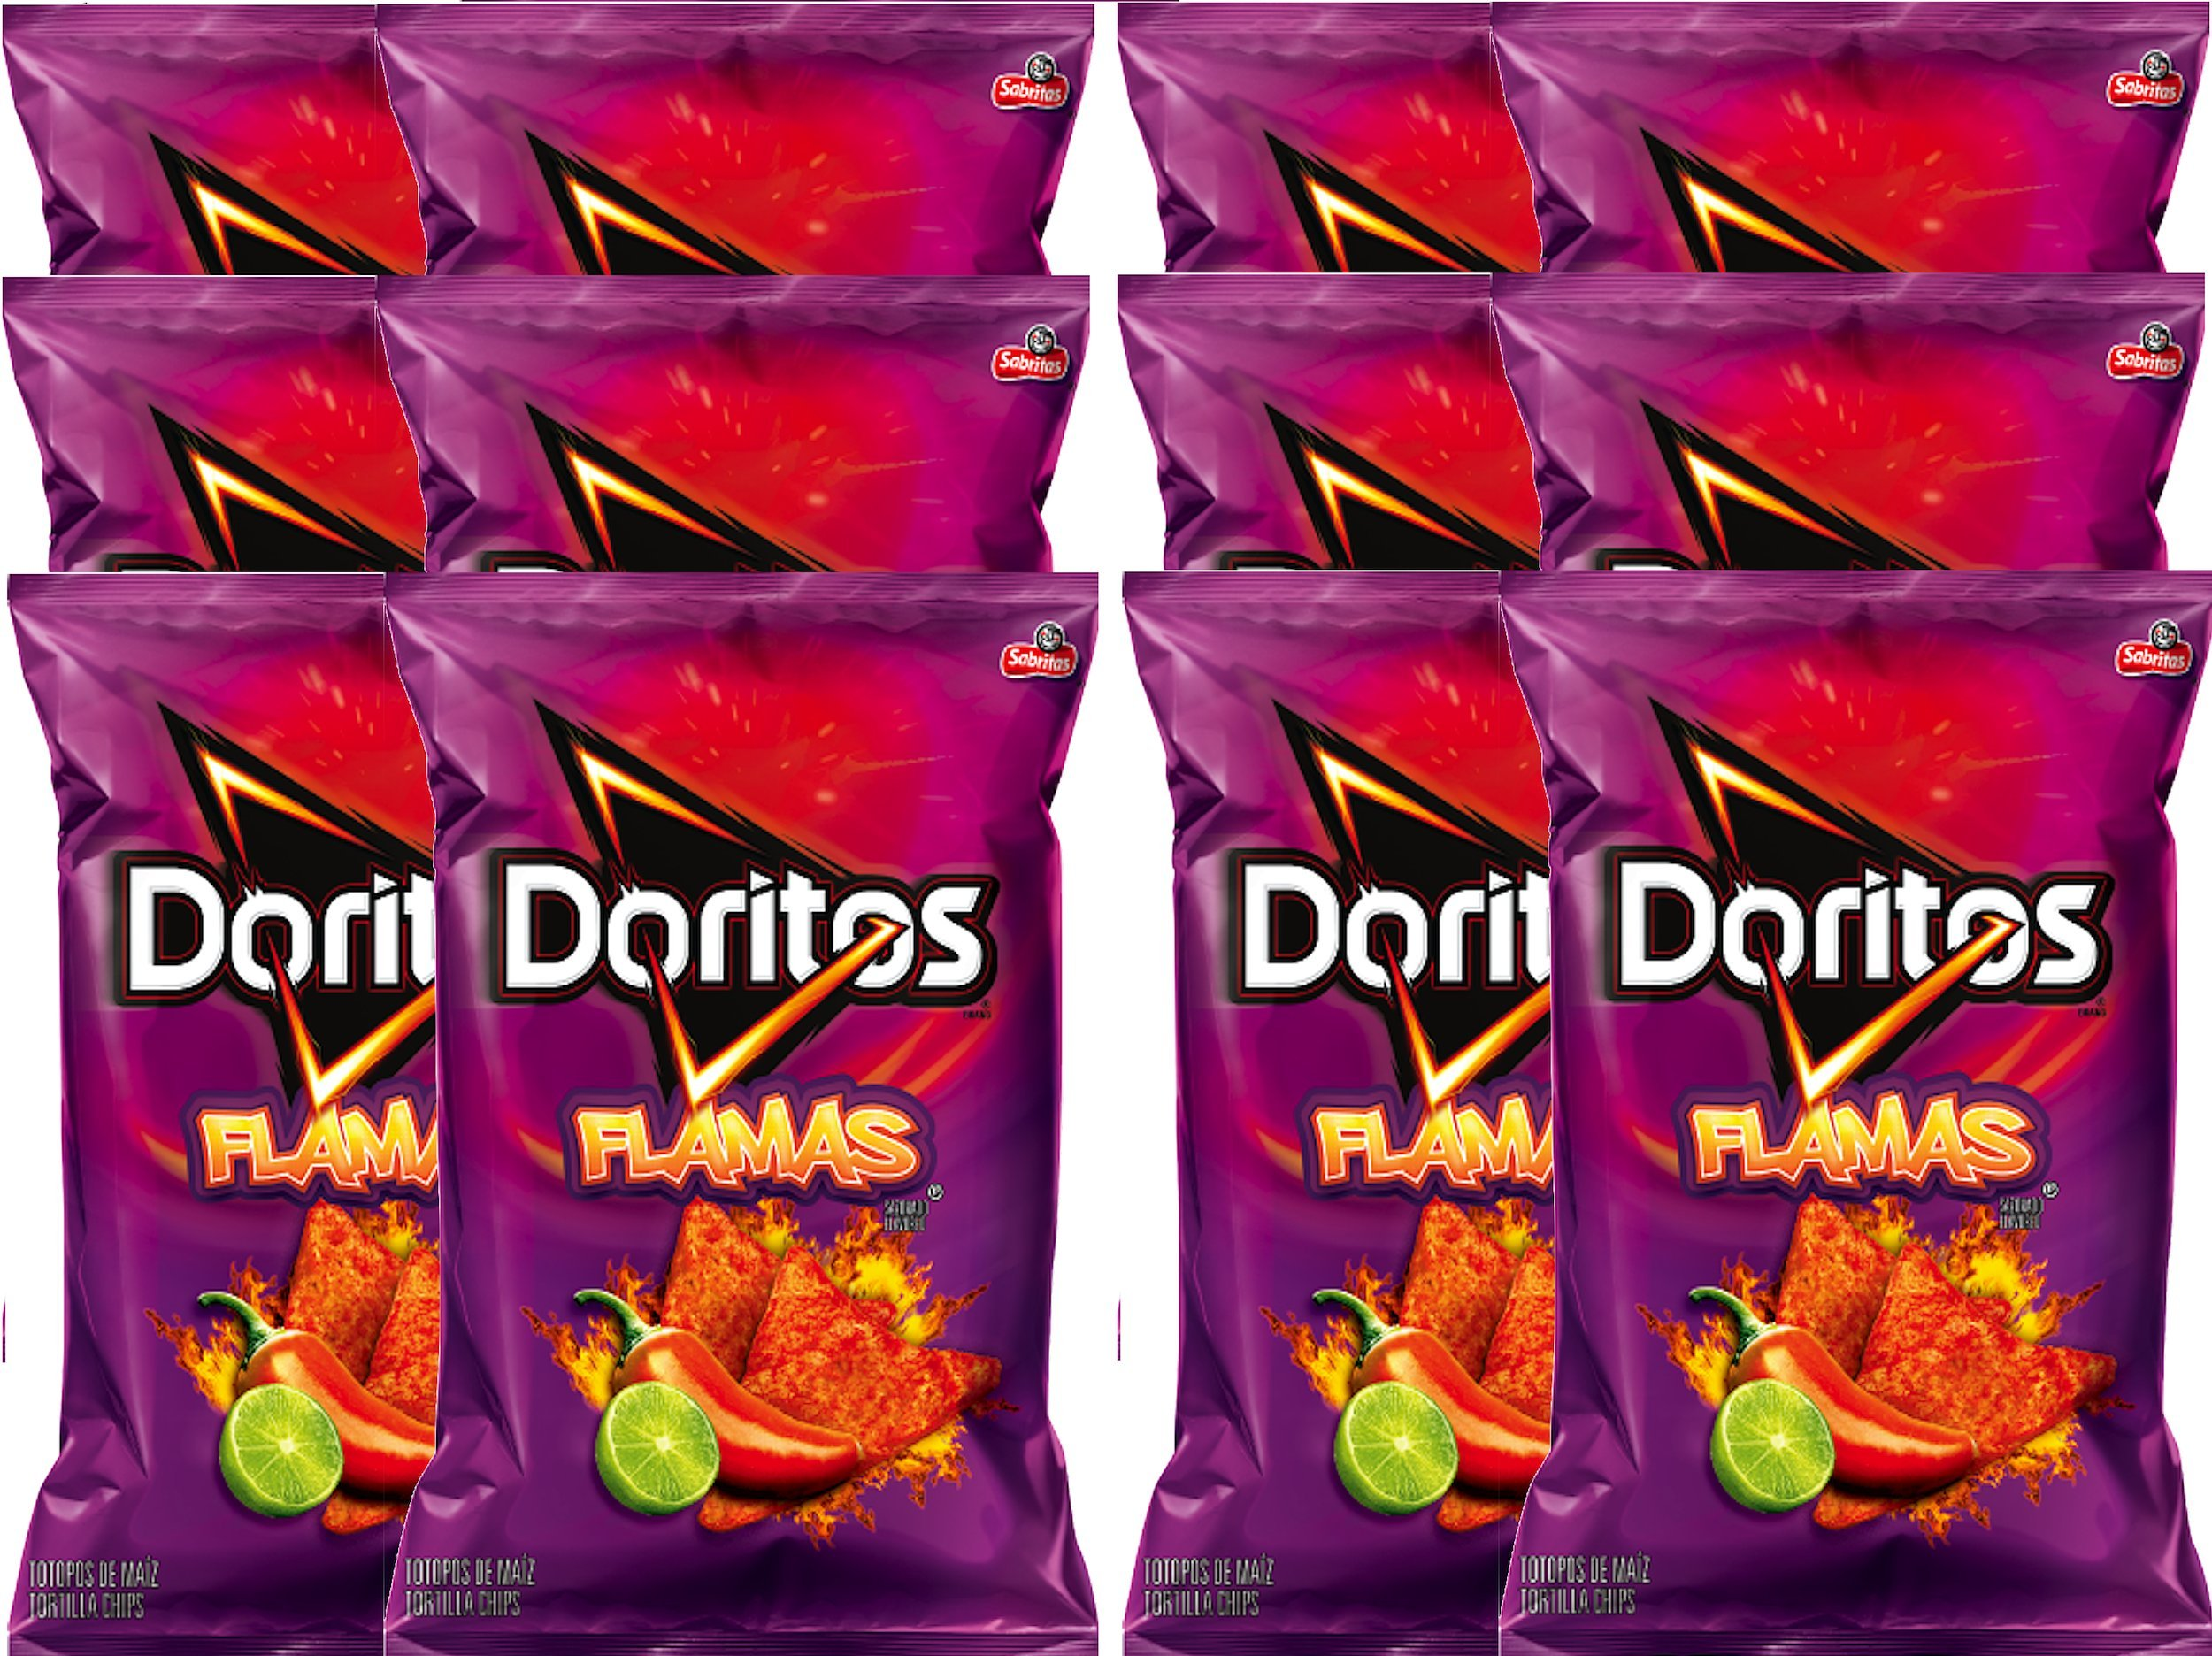 Doritos Flamas Flavored Tortilla Chips Net Wt 10 Oz Snack Care Package (12)